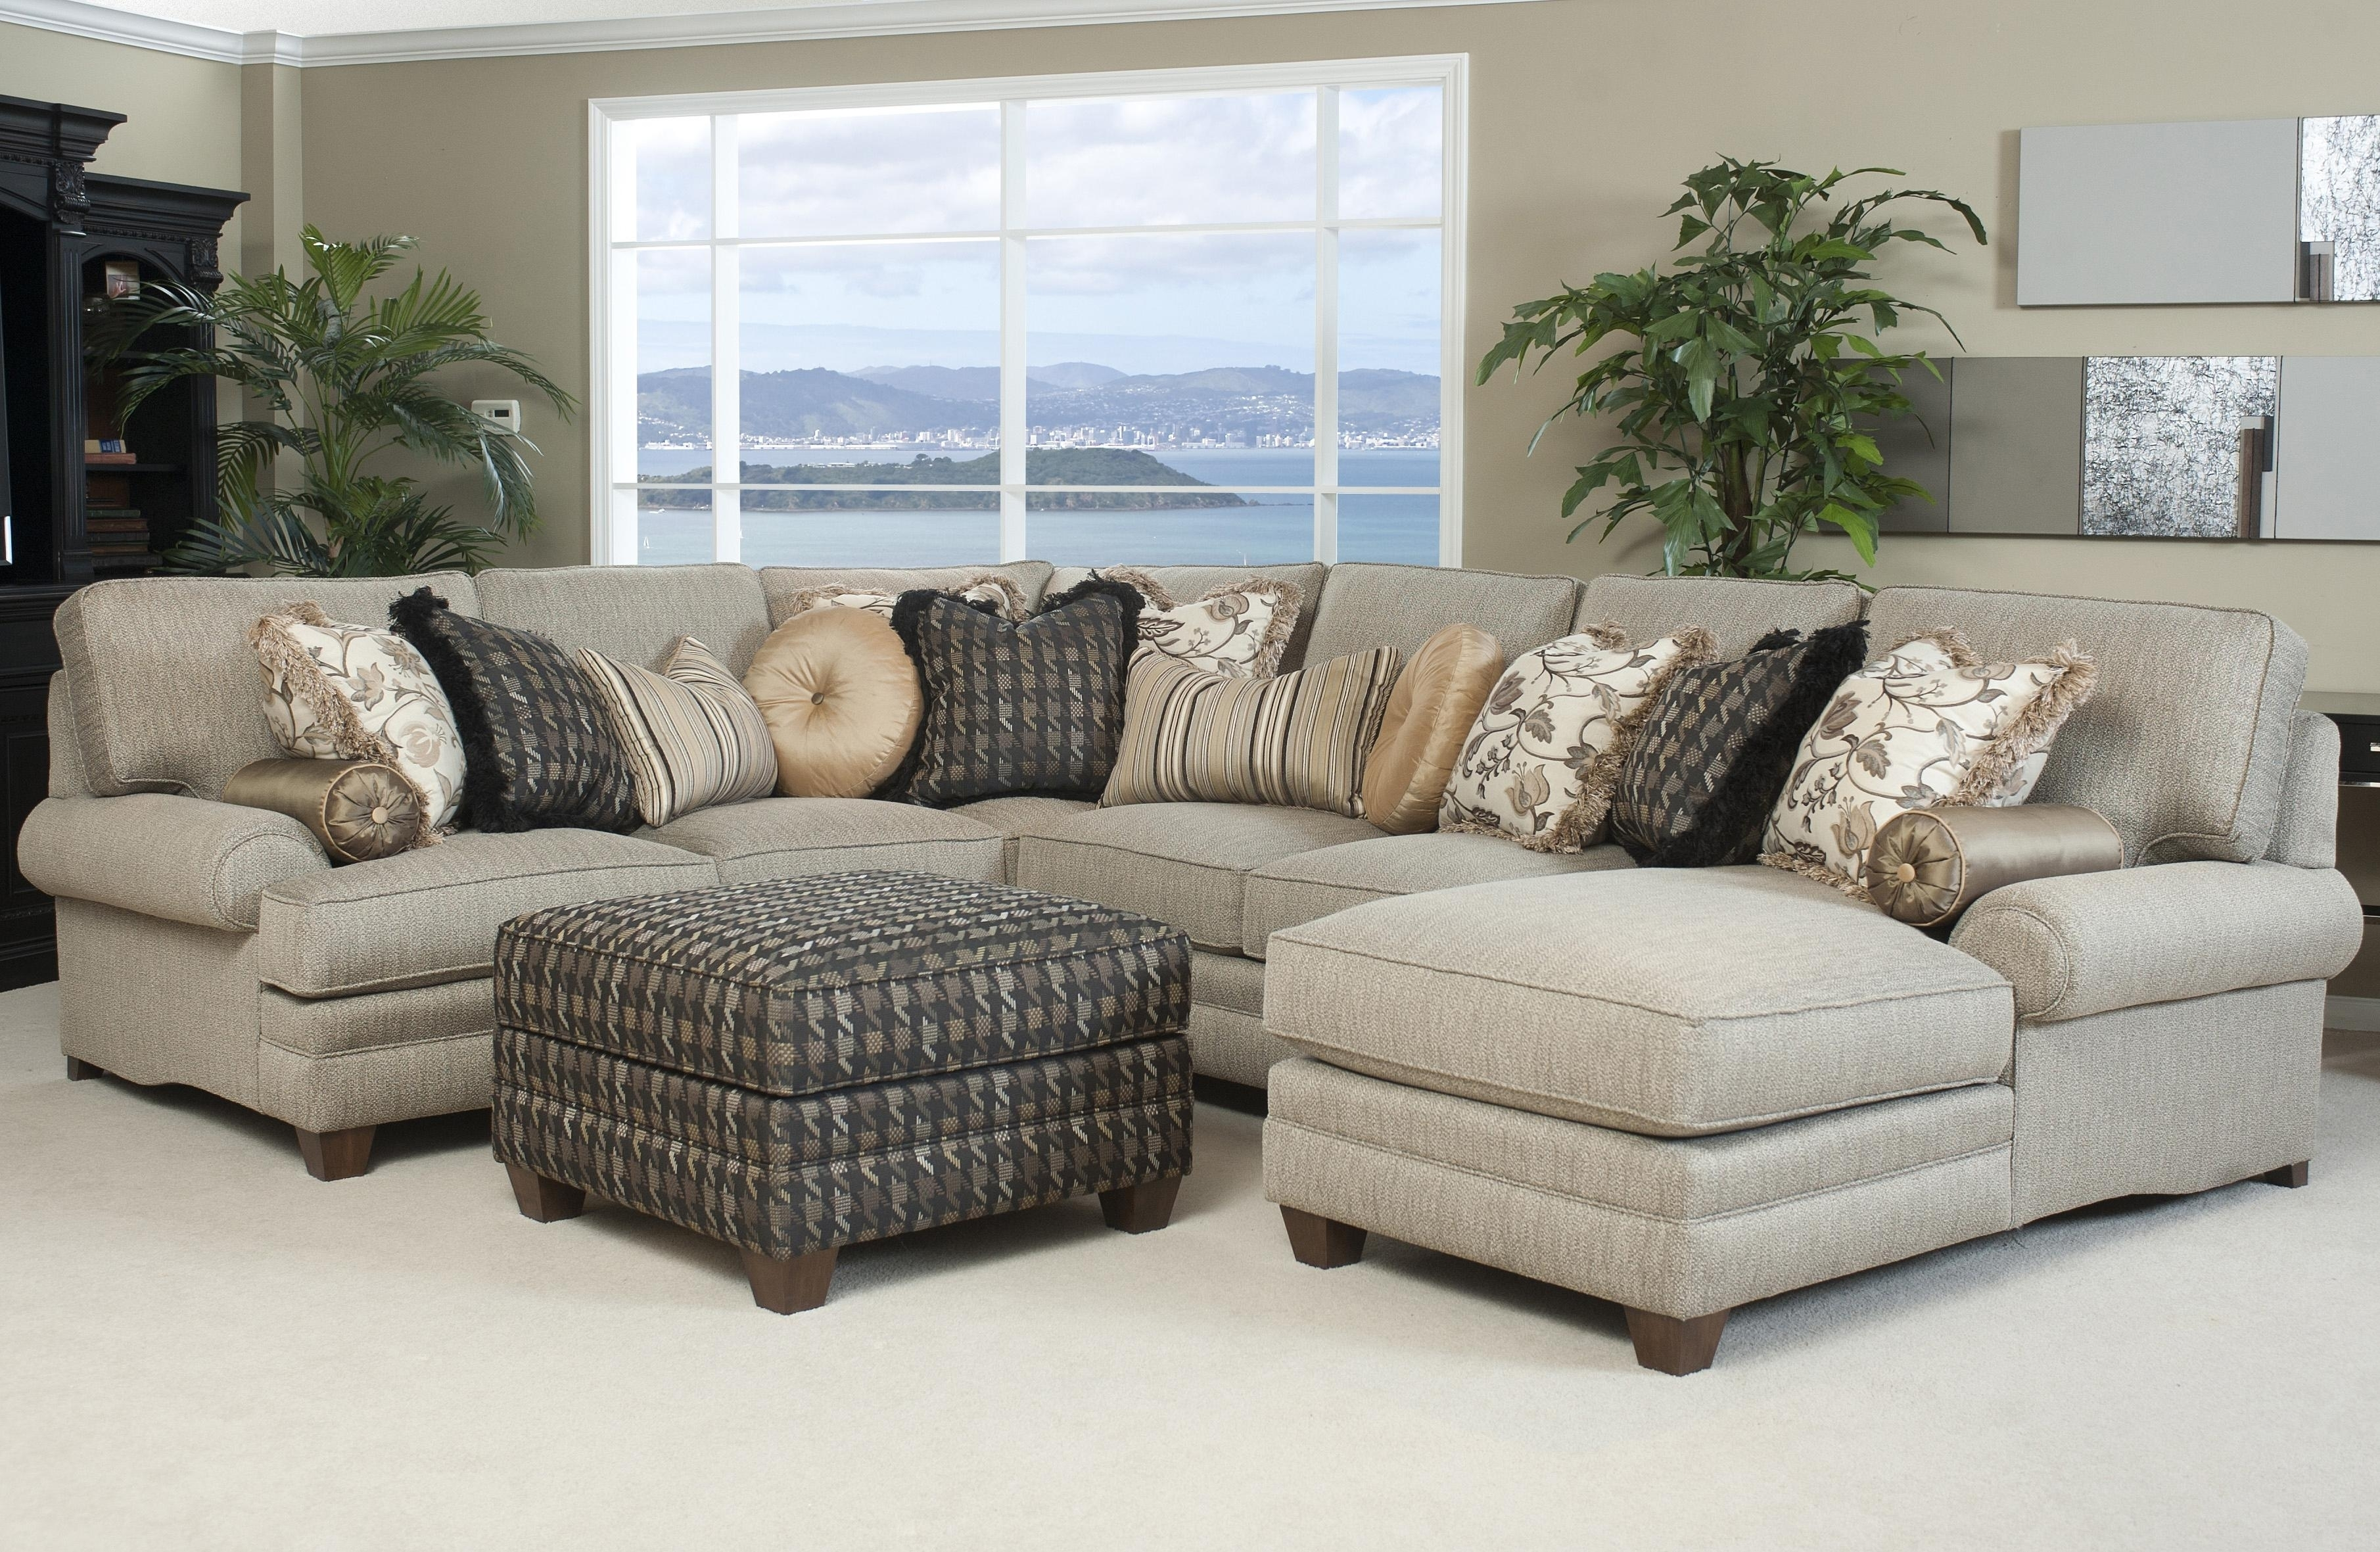 Awesome Sectional Sofas In Phoenix Az – Buildsimplehome Throughout Phoenix Arizona Sectional Sofas (Image 3 of 10)